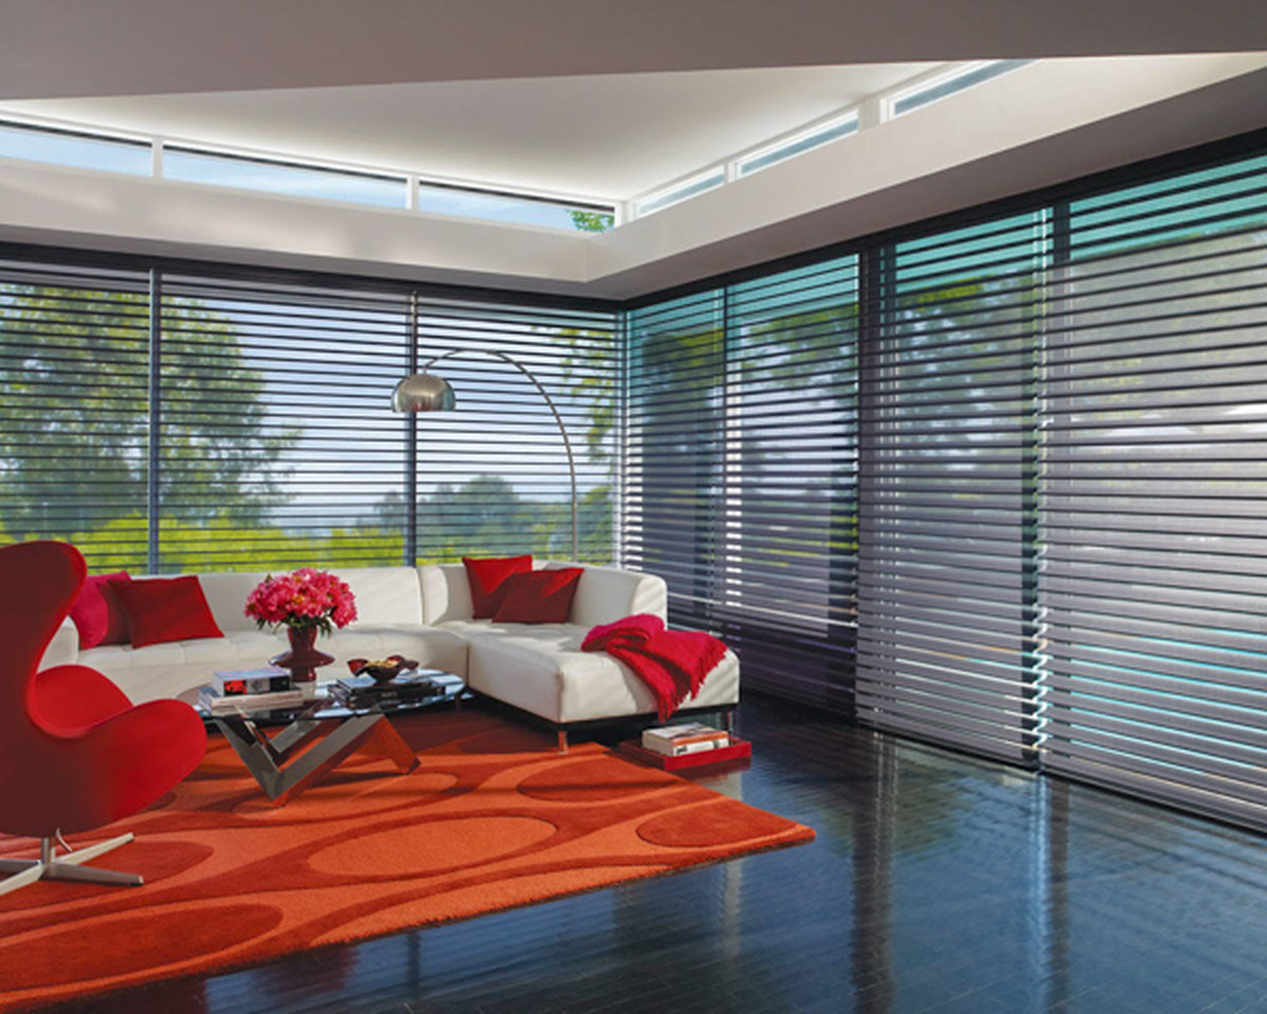 Blinds & Shades Designs